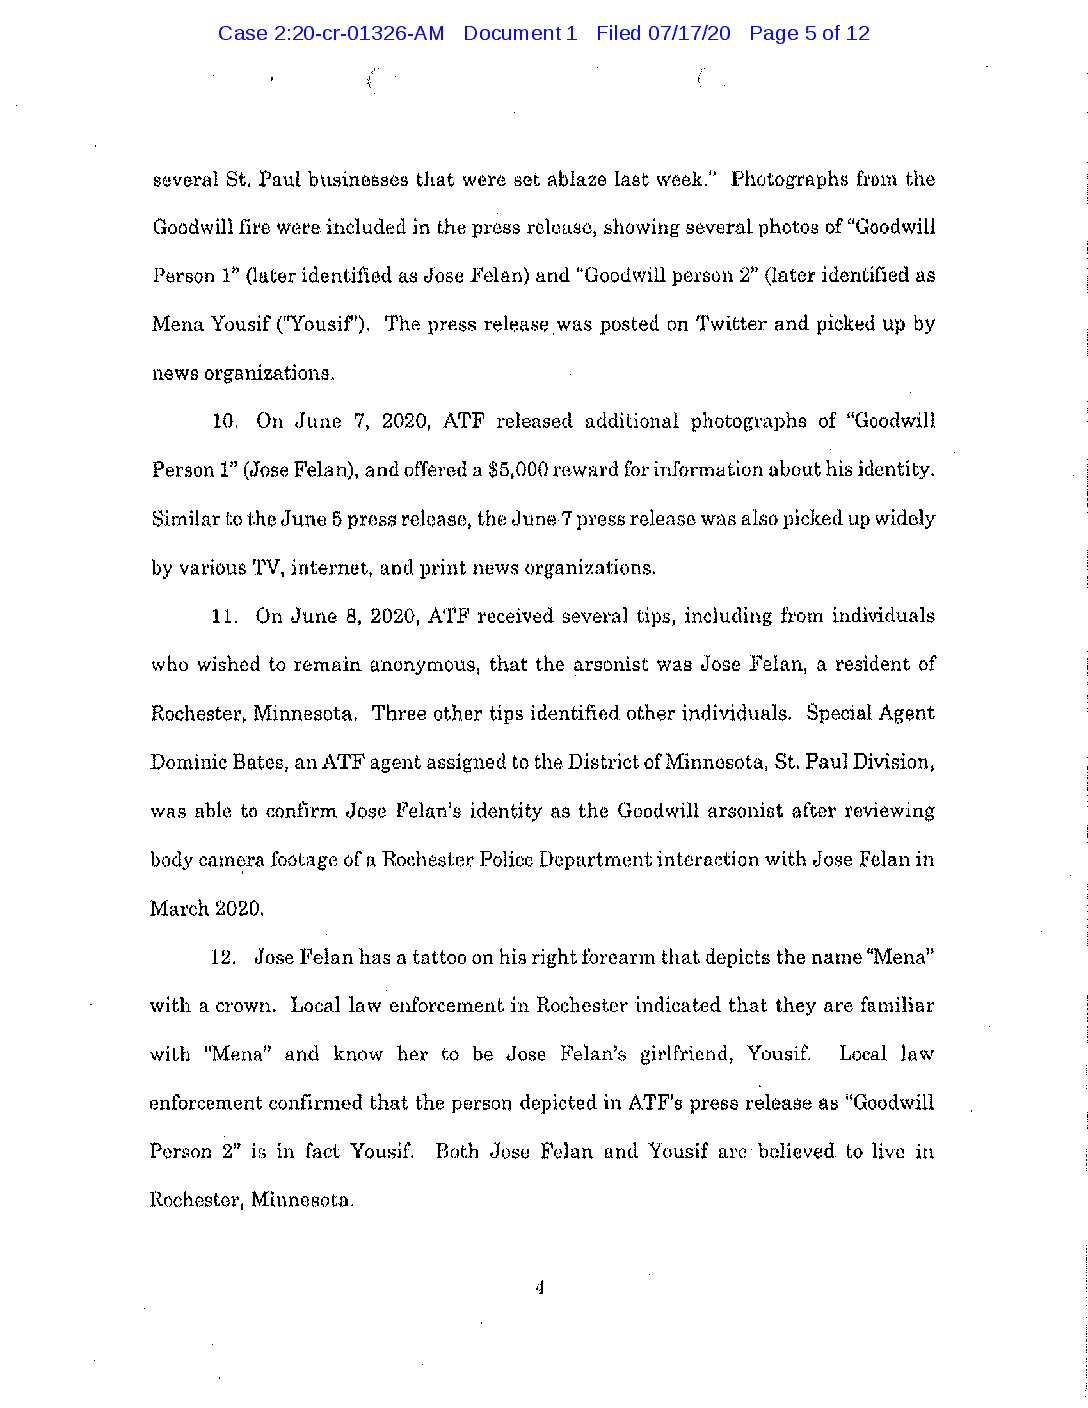 Page 5 of 12